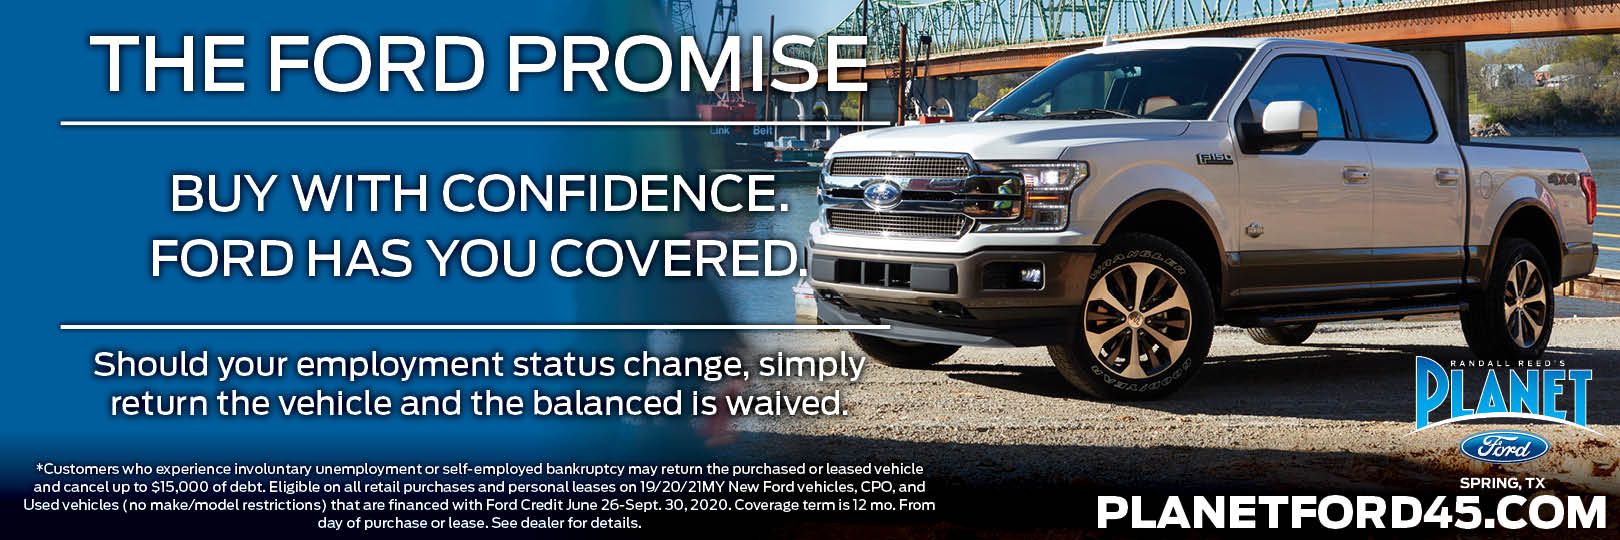 200630 Site Ford Promise2